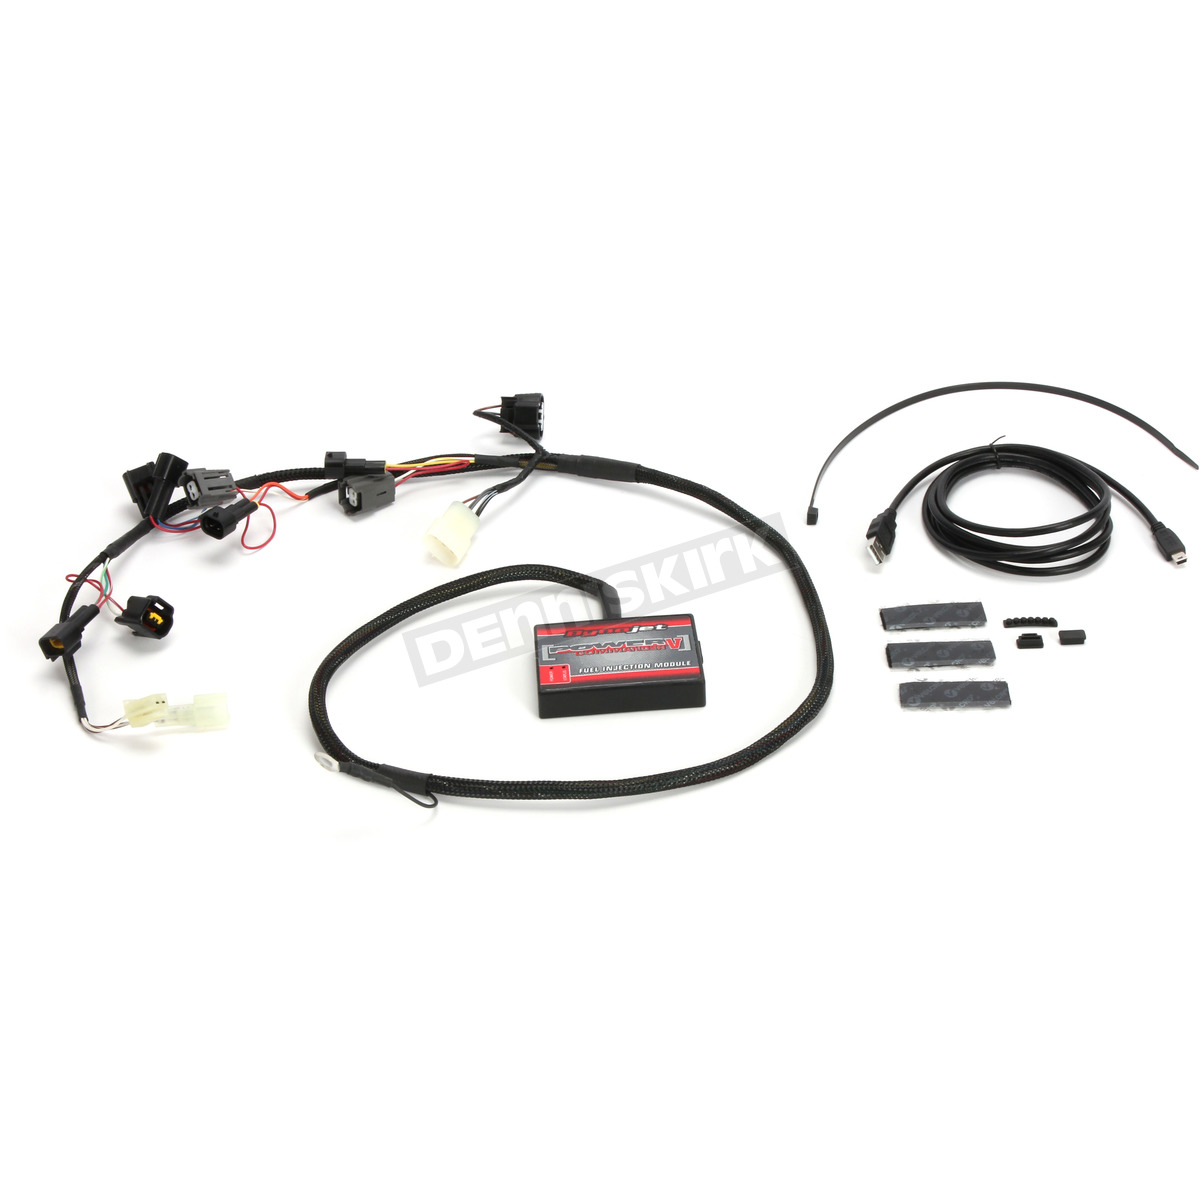 Power Commander V with Ignition Control - 22-065